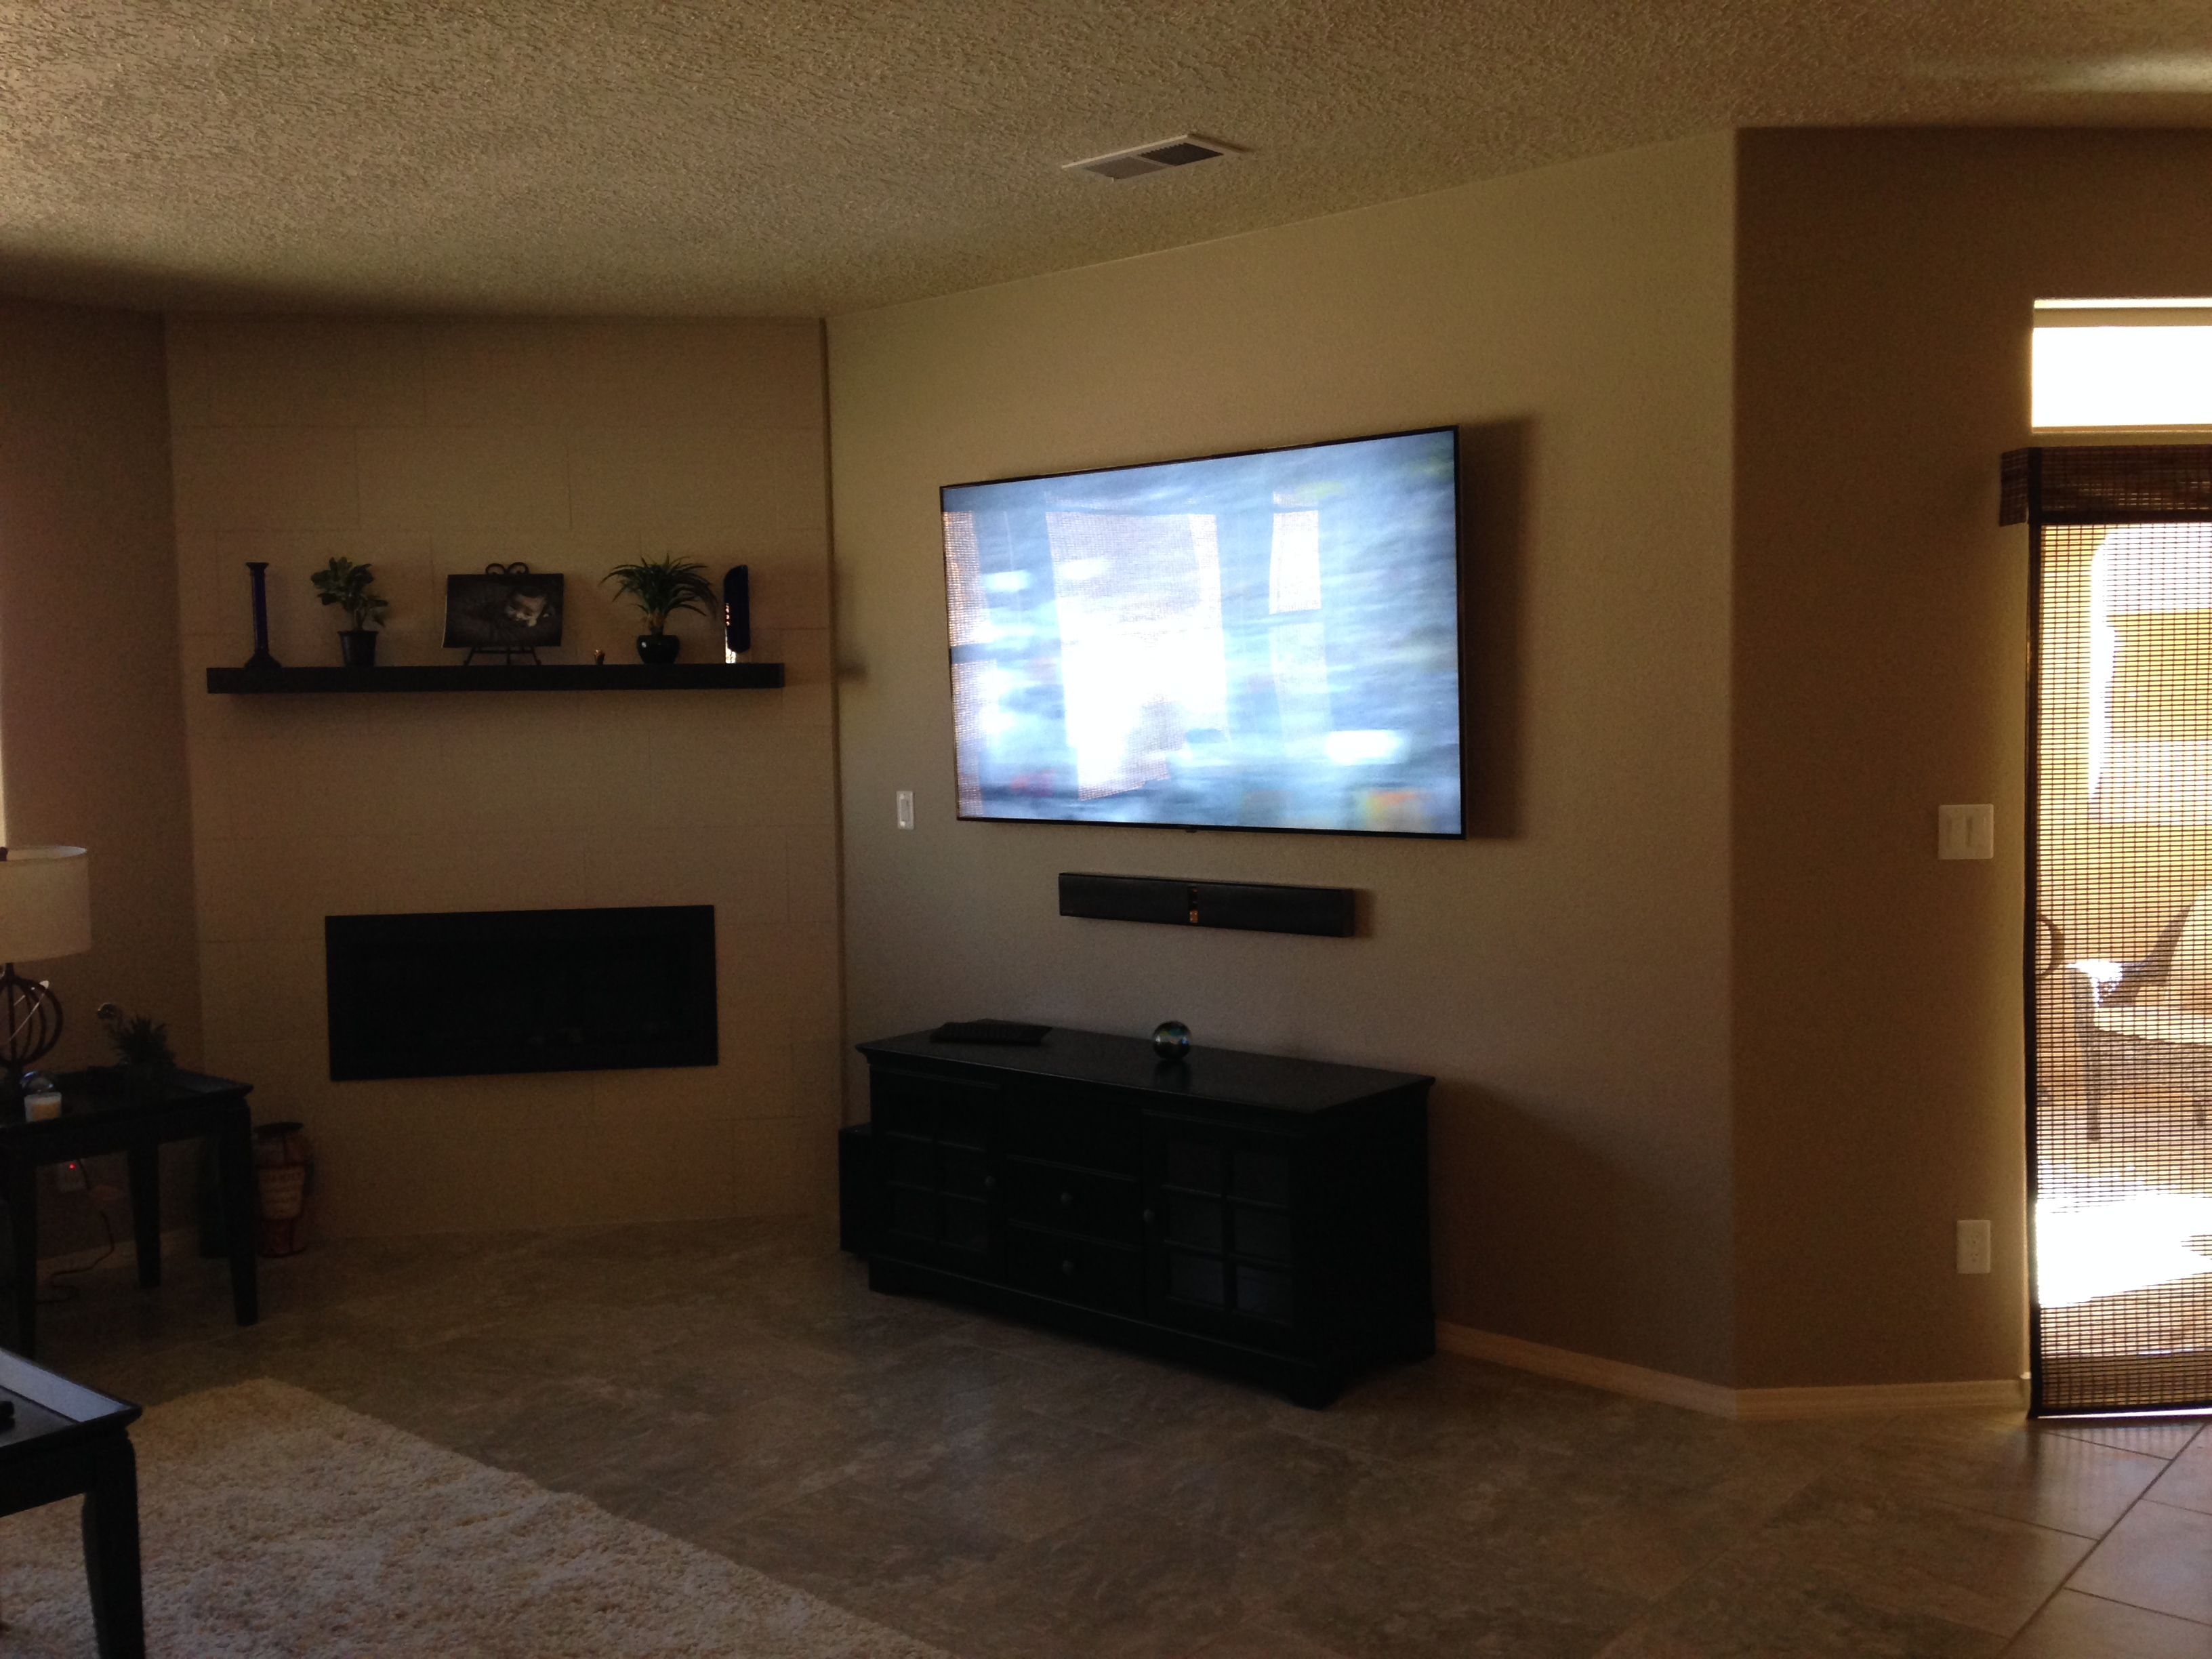 70 Tv Mounted With Sound Bar And Ambient Lighting Great Look For The Living Room Home Ambient Lighting Mounted Tv